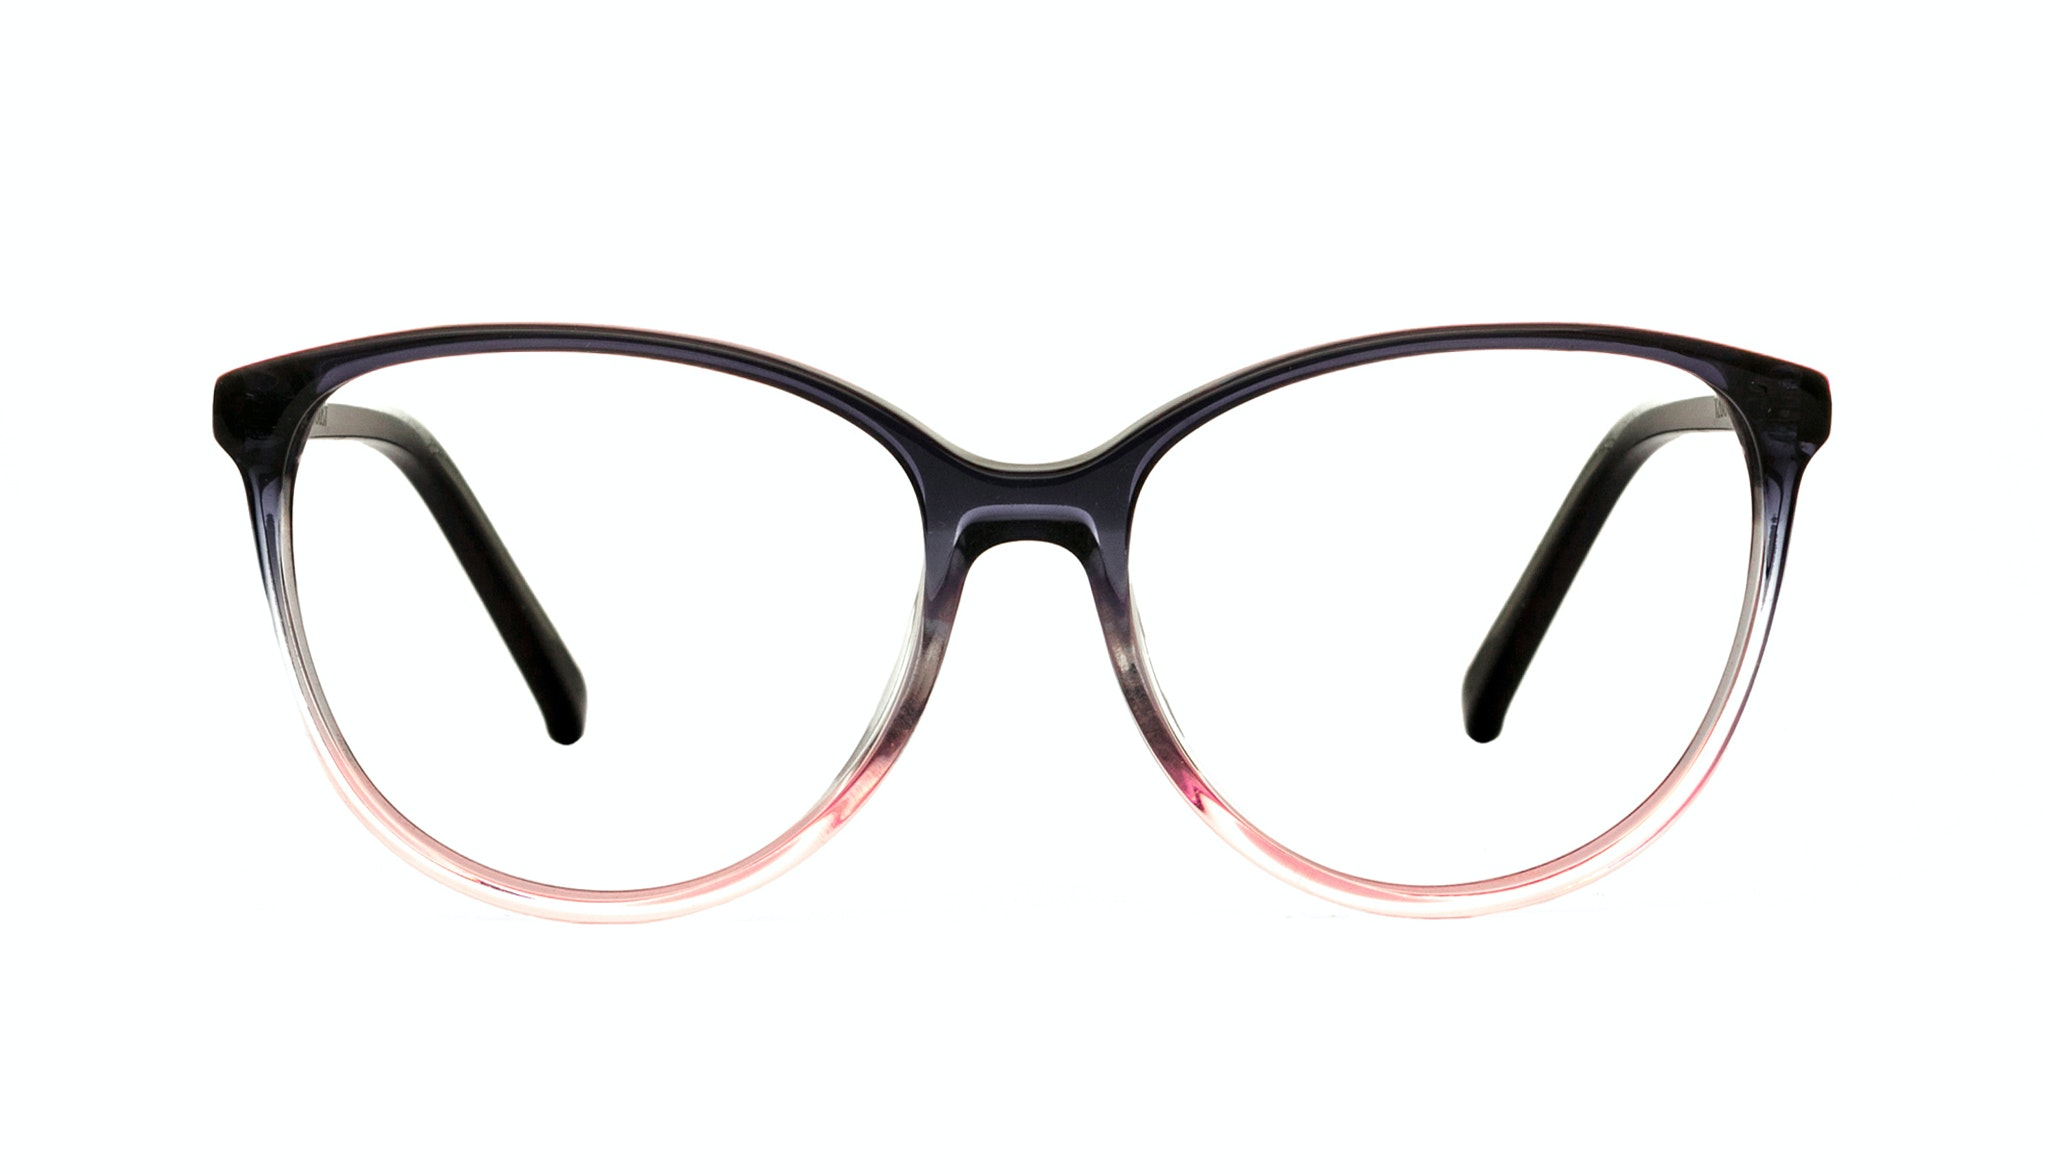 Affordable Fashion Glasses Round Eyeglasses Women Imagine Pink Dust Front